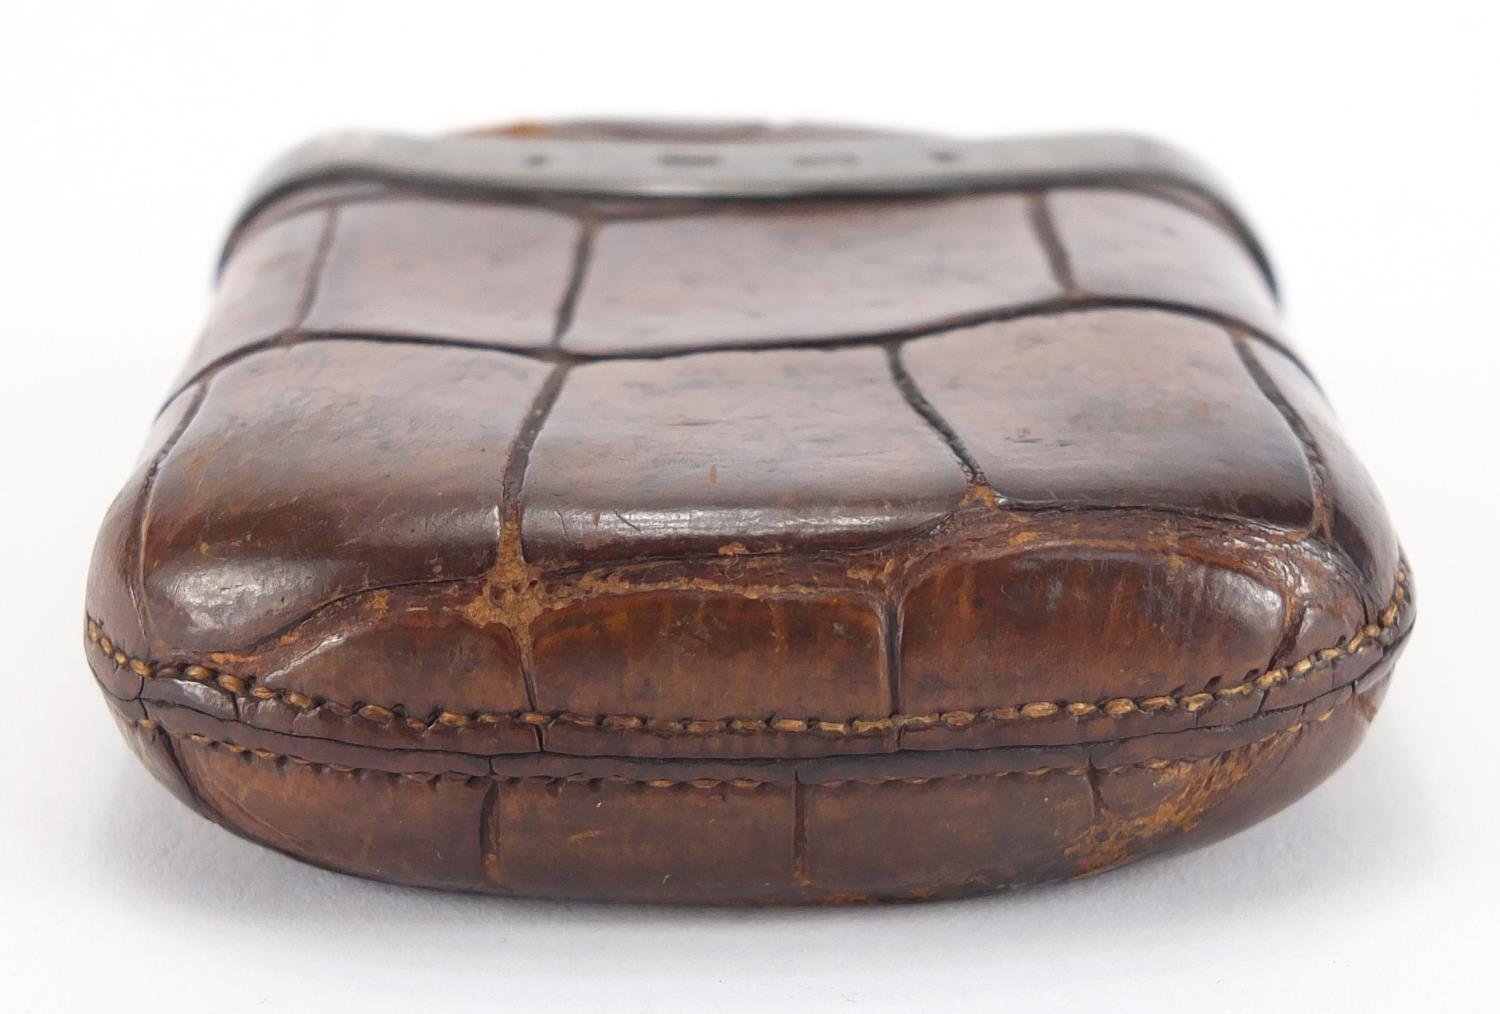 Lot 31 - Victorian crocodile skin cigar case with silver mounts, G. H. J. J. J London 1878, 9cm x 7cm :For